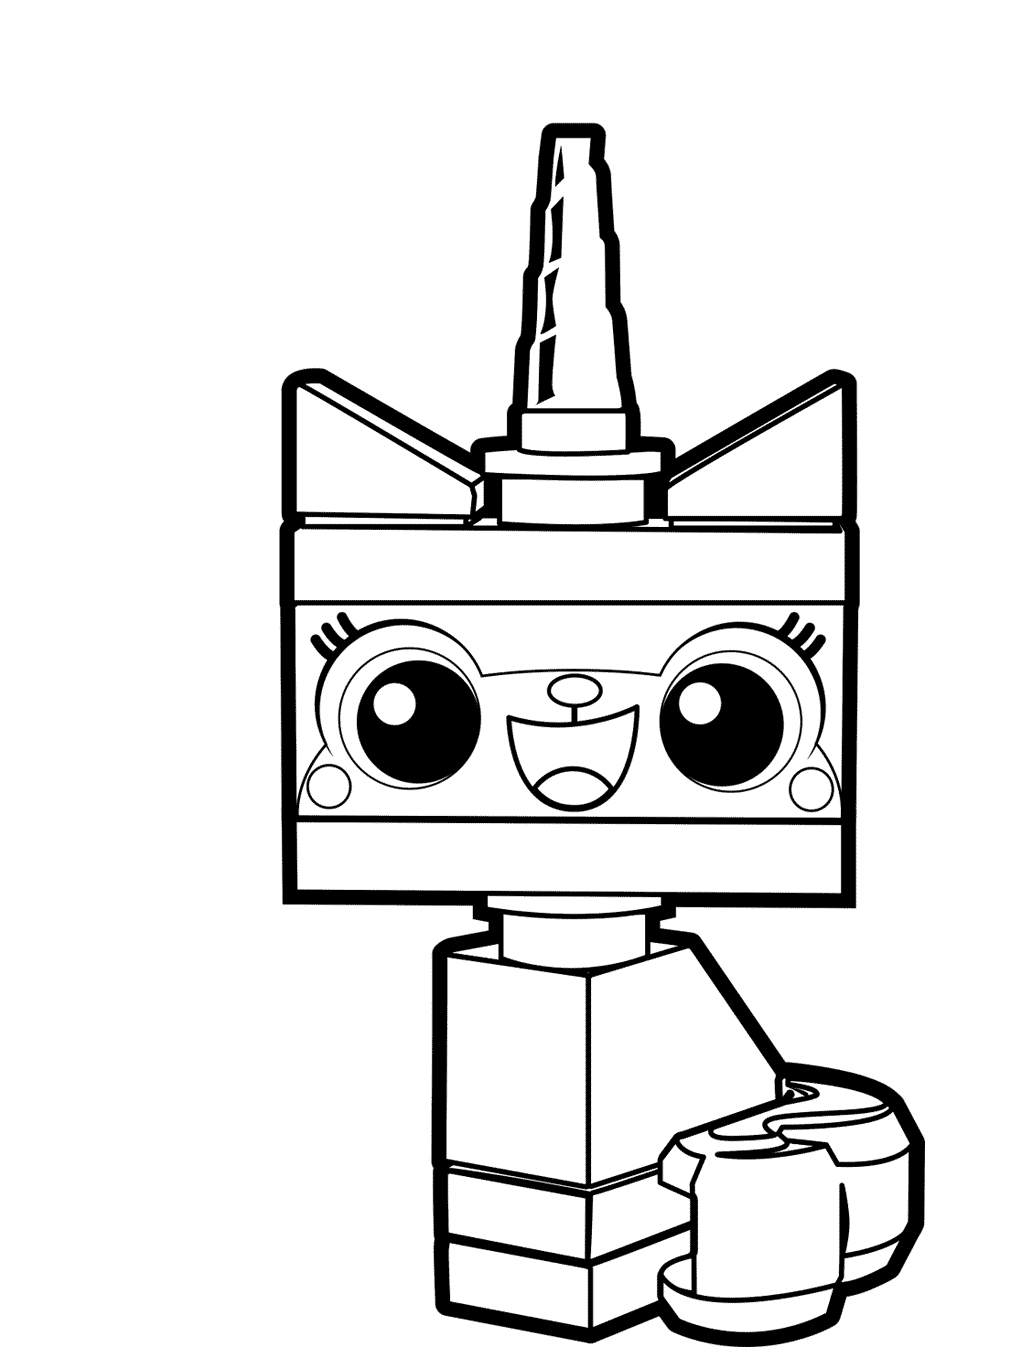 coloring pictures lego lego star wars clone wars coloring page free printable coloring pictures lego